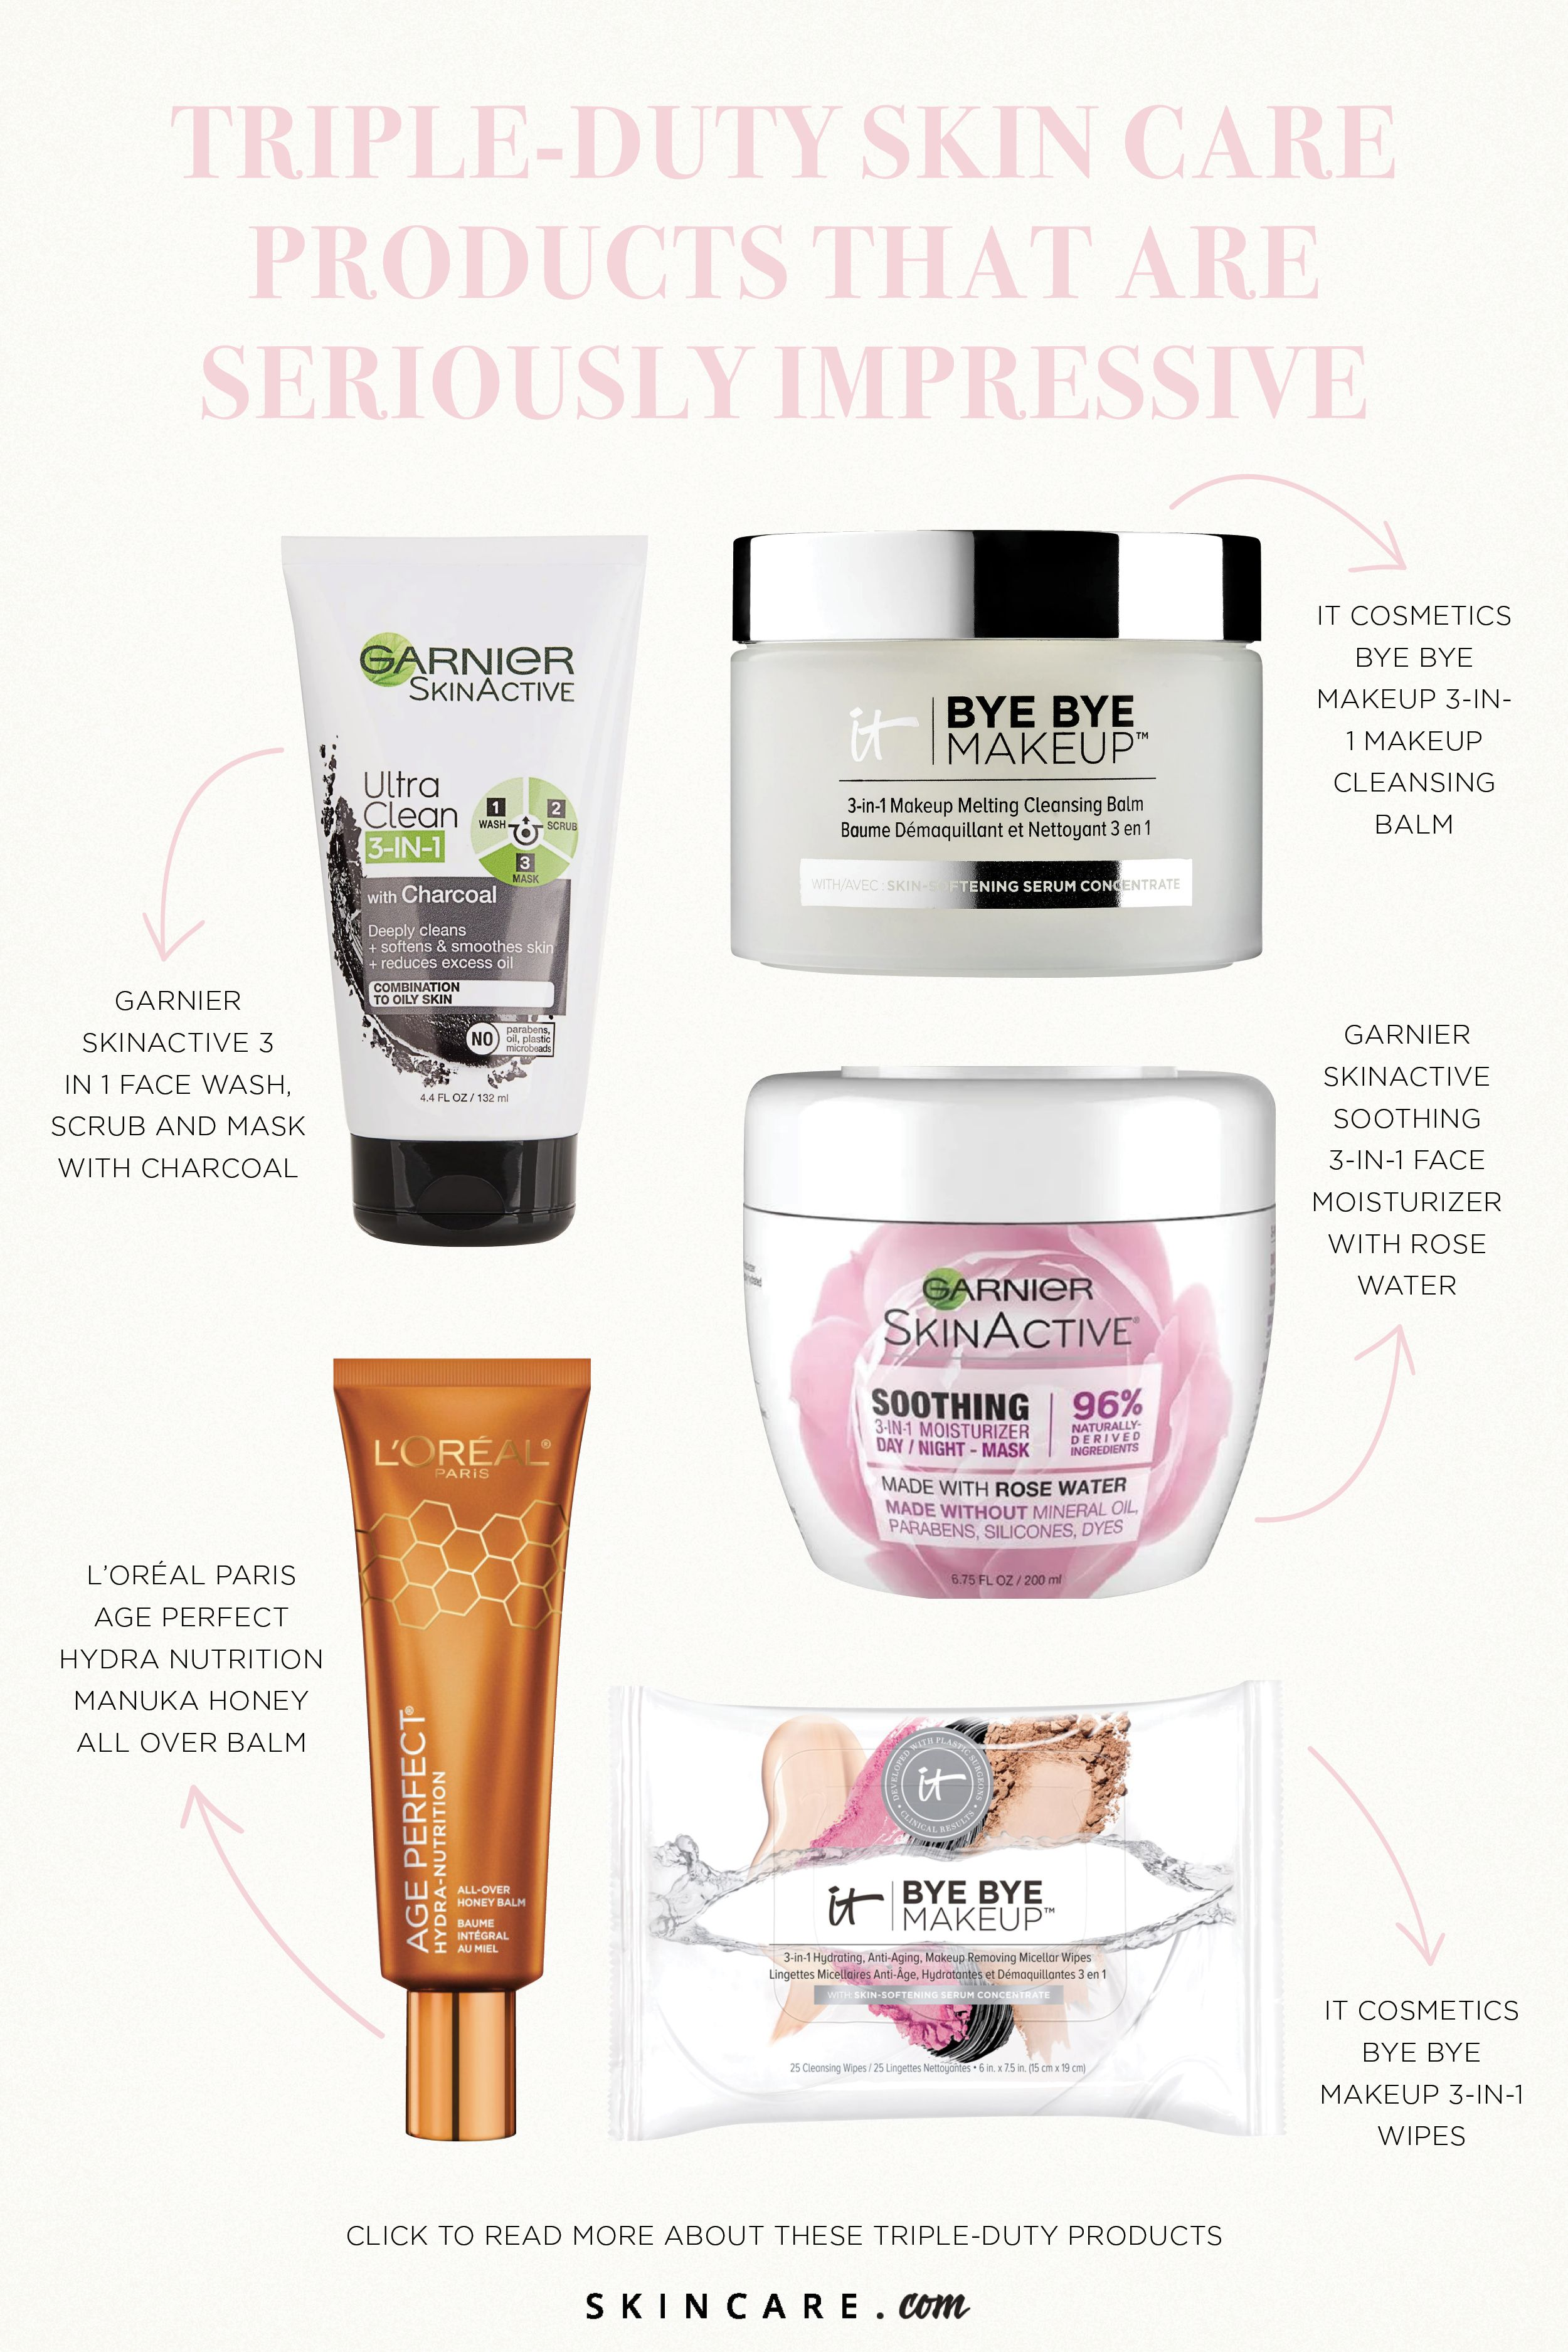 5 Triple Duty Skin Care Products That Are Seriously Impressive Skincare Com By L Oreal Skin Care Garnier Skin Active Face Moisturizer